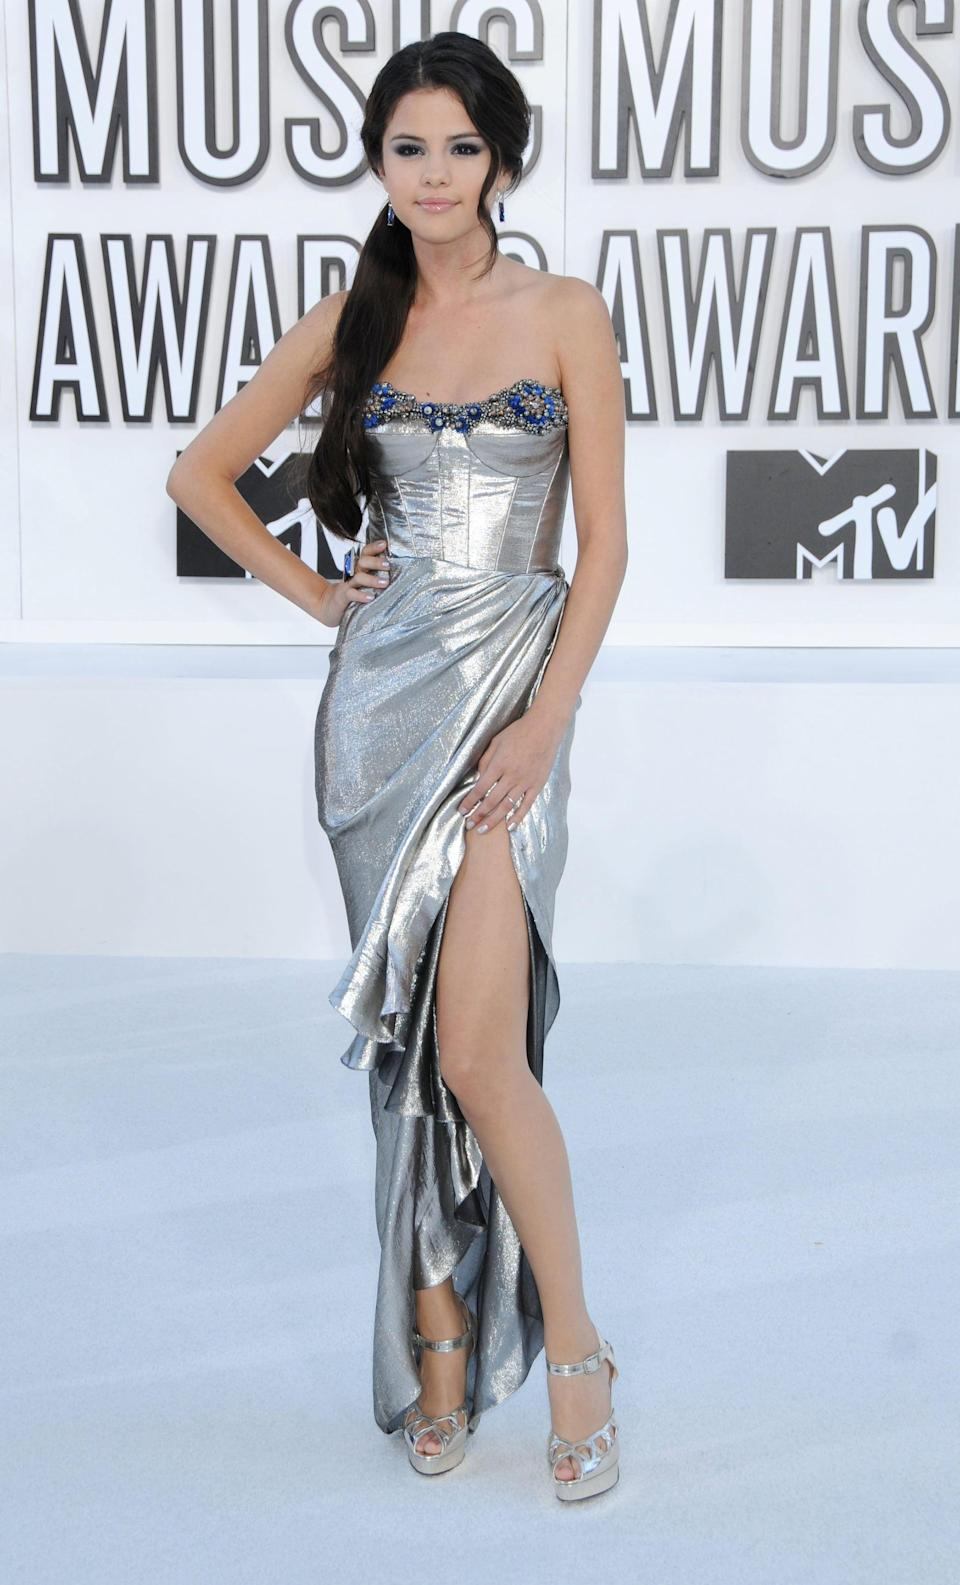 <p>Selena seemed to be breaking out of her shell in a sexy silver dress at the MTV VMAs in LA.</p>